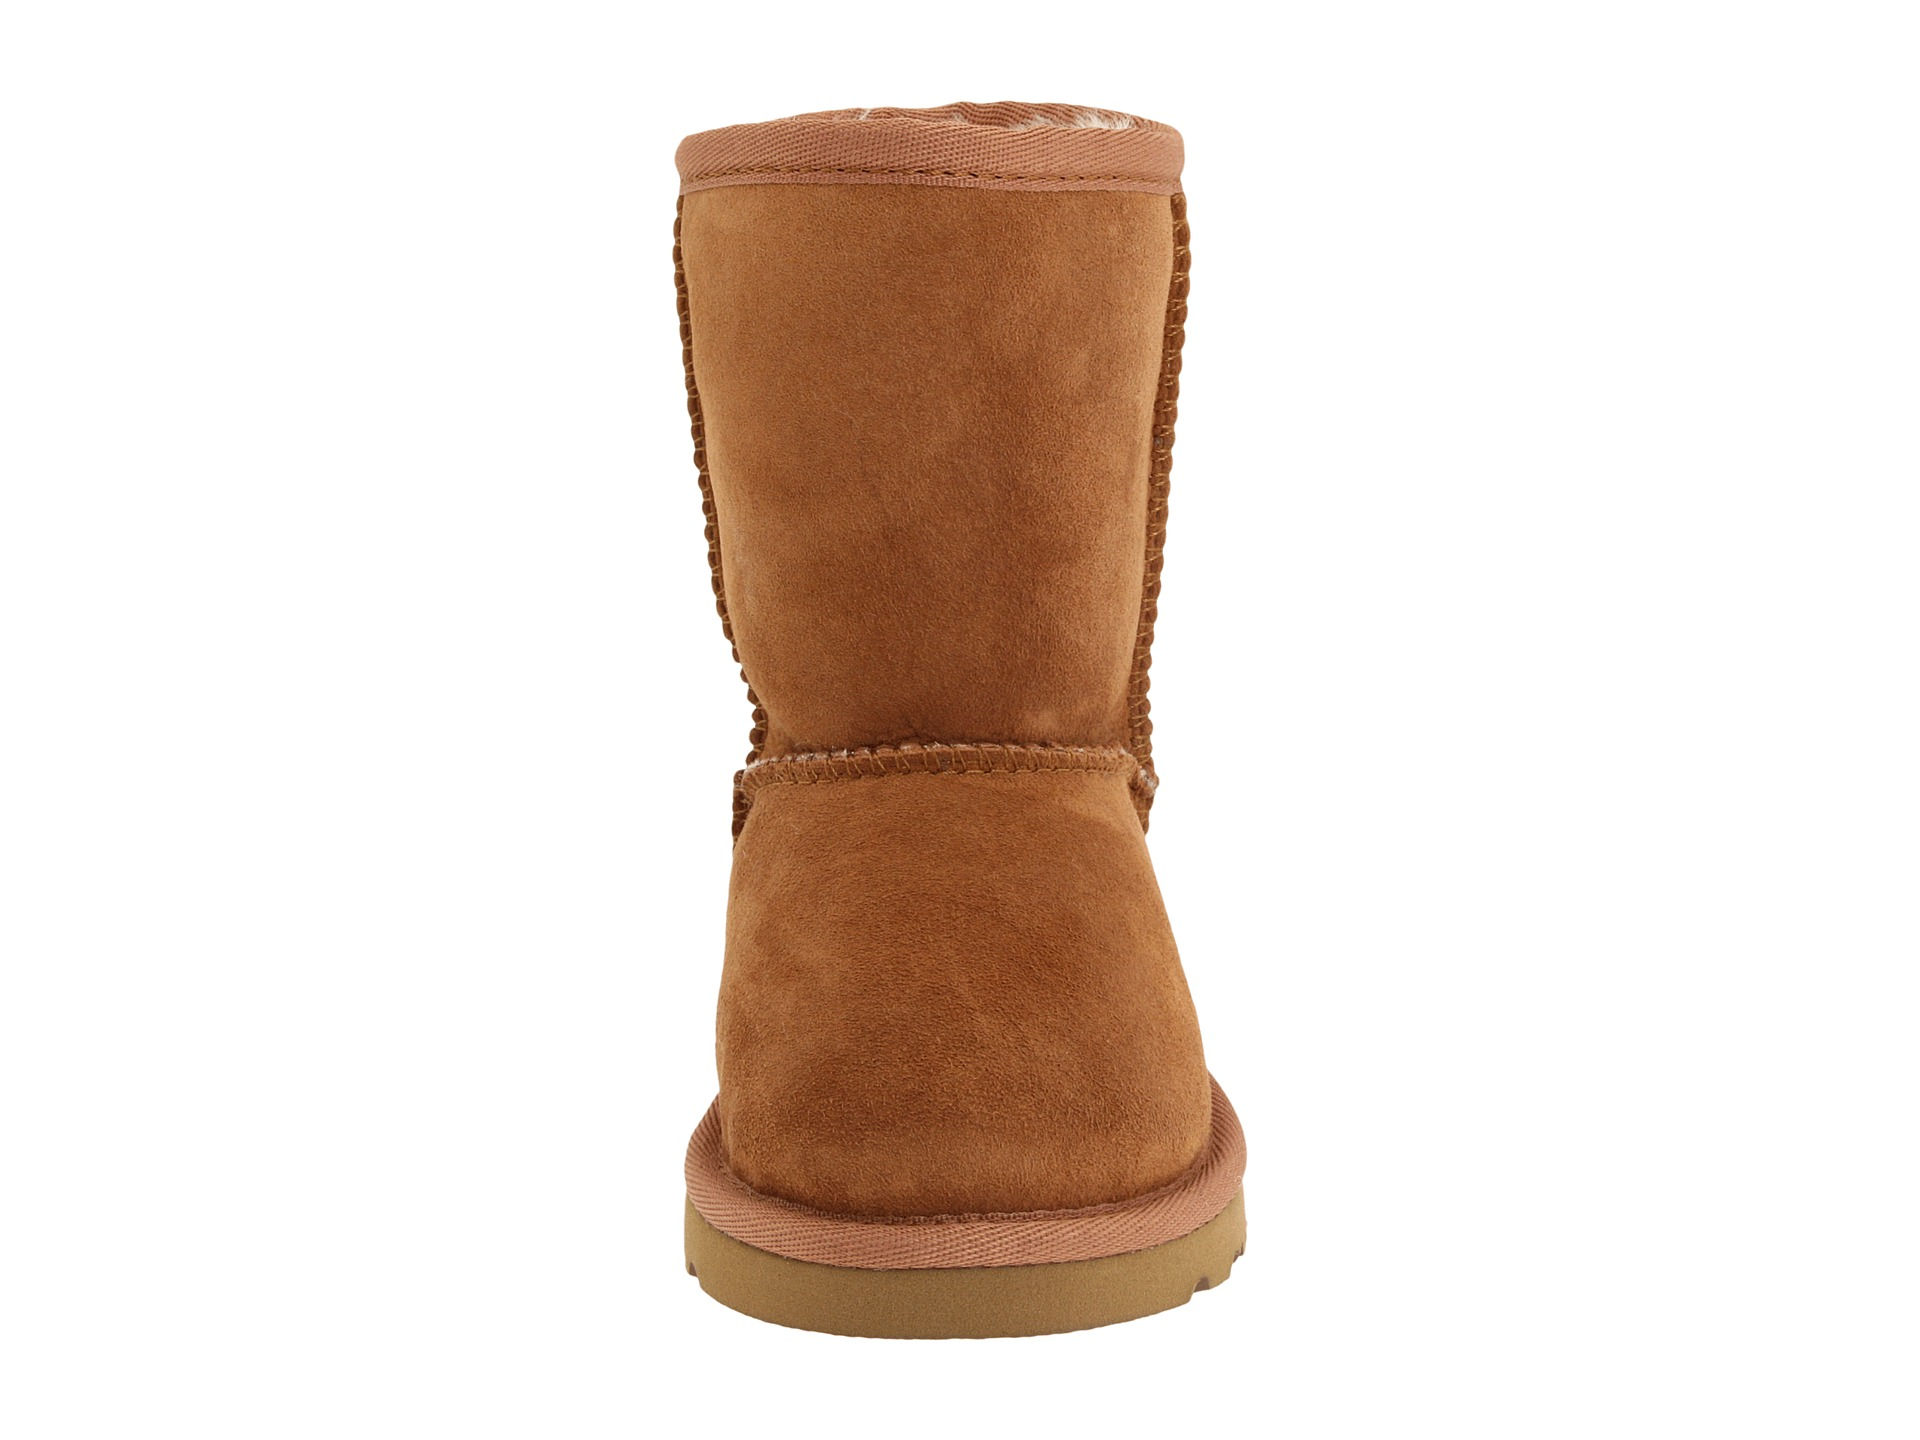 Get free shipping and free returns on UGG® boots, slippers and shoes for kids, including classic styles for girls and boys. Shop now at testdji.cf